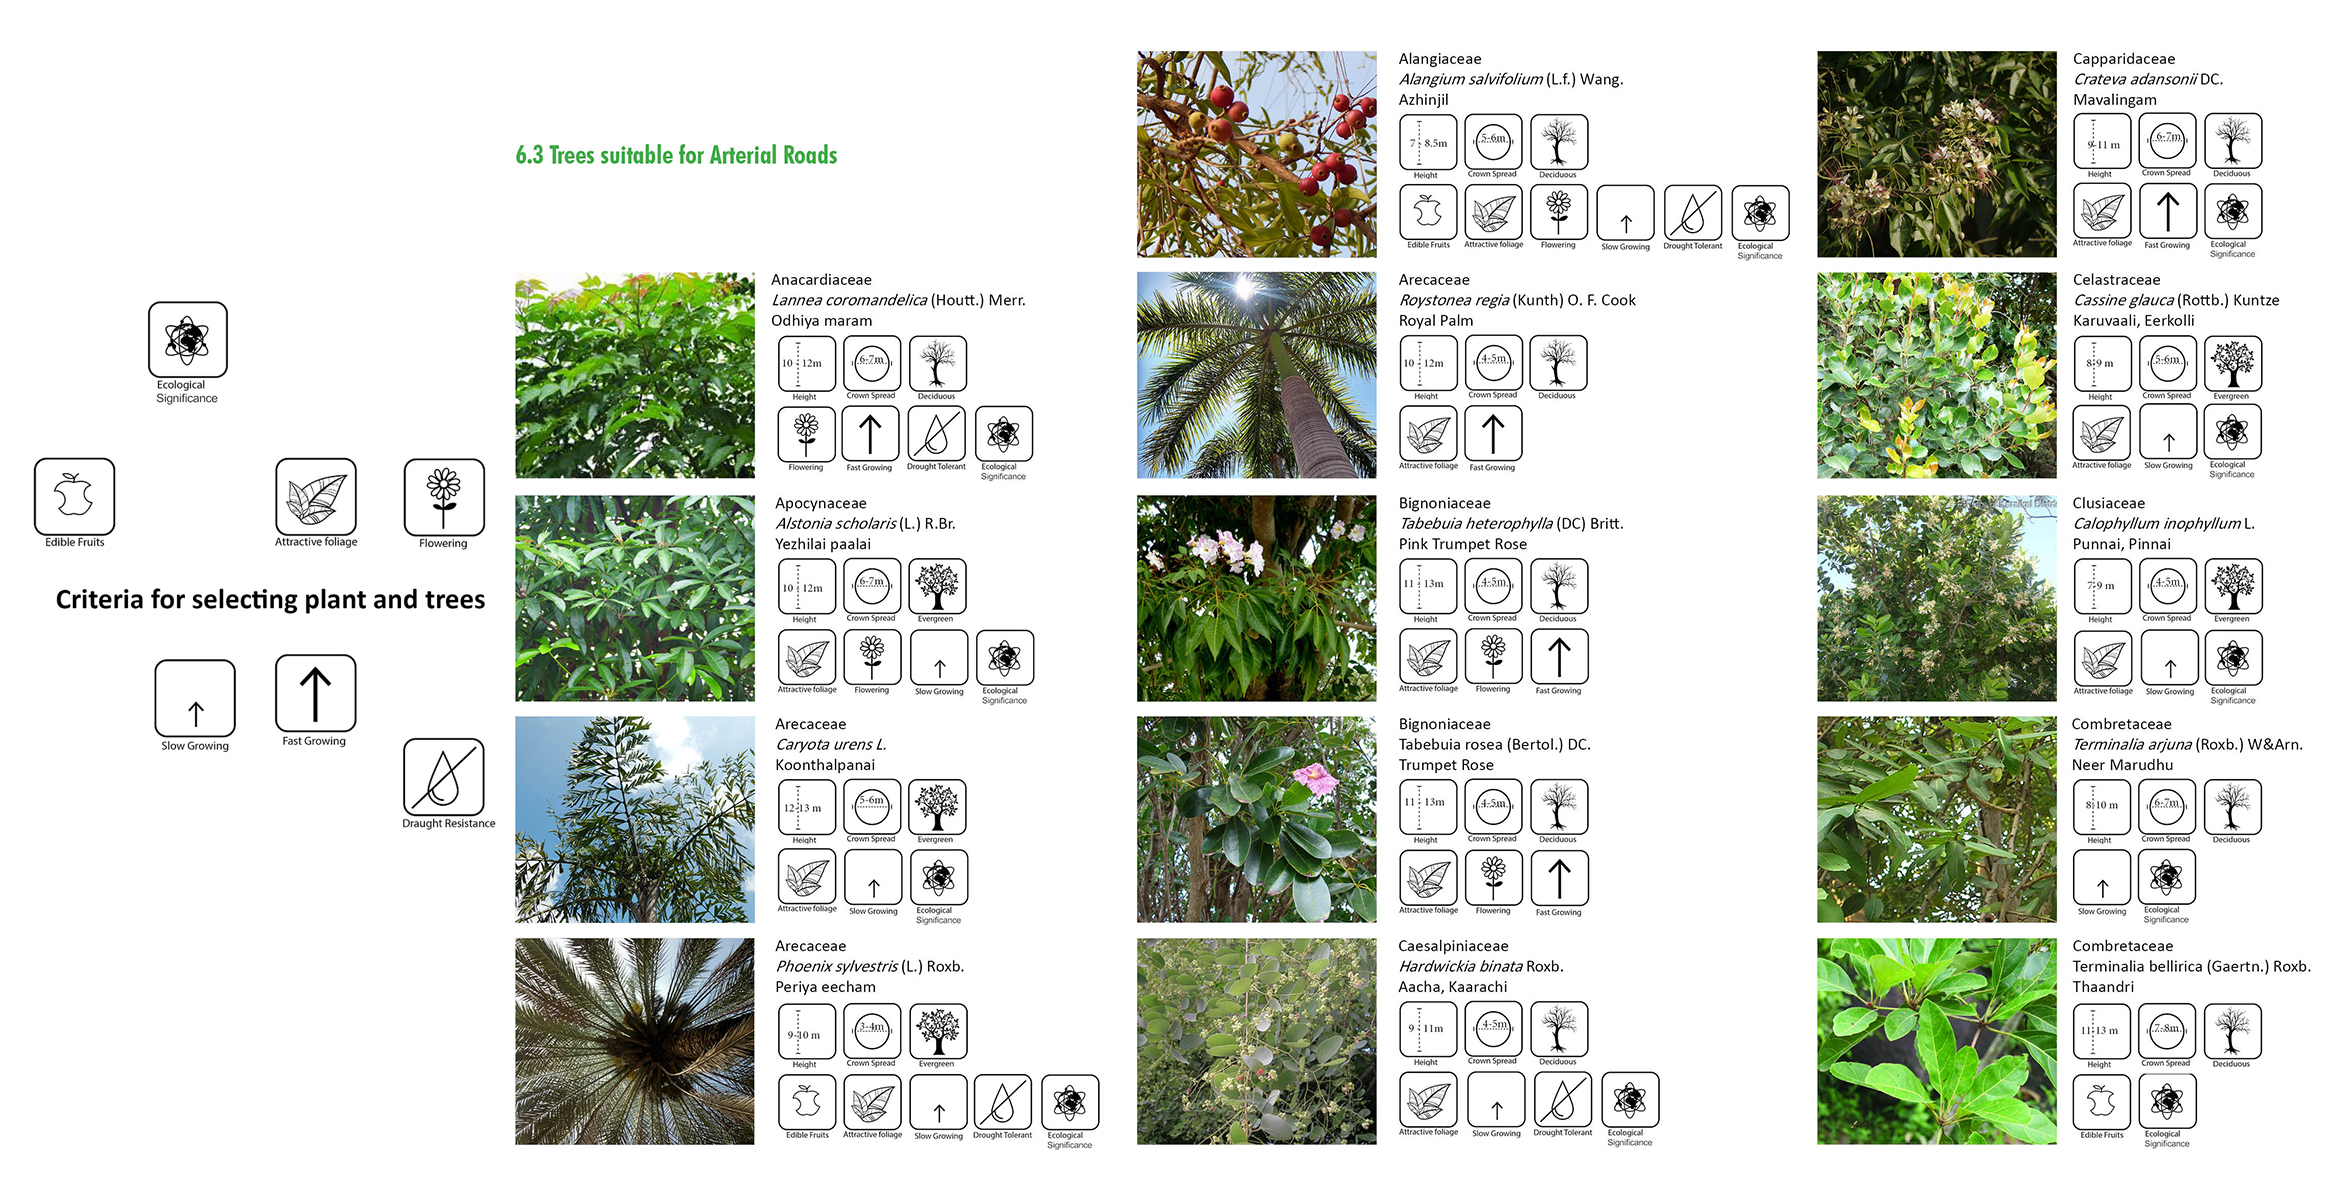 7.The catalogue of flora that are to be used and their properties